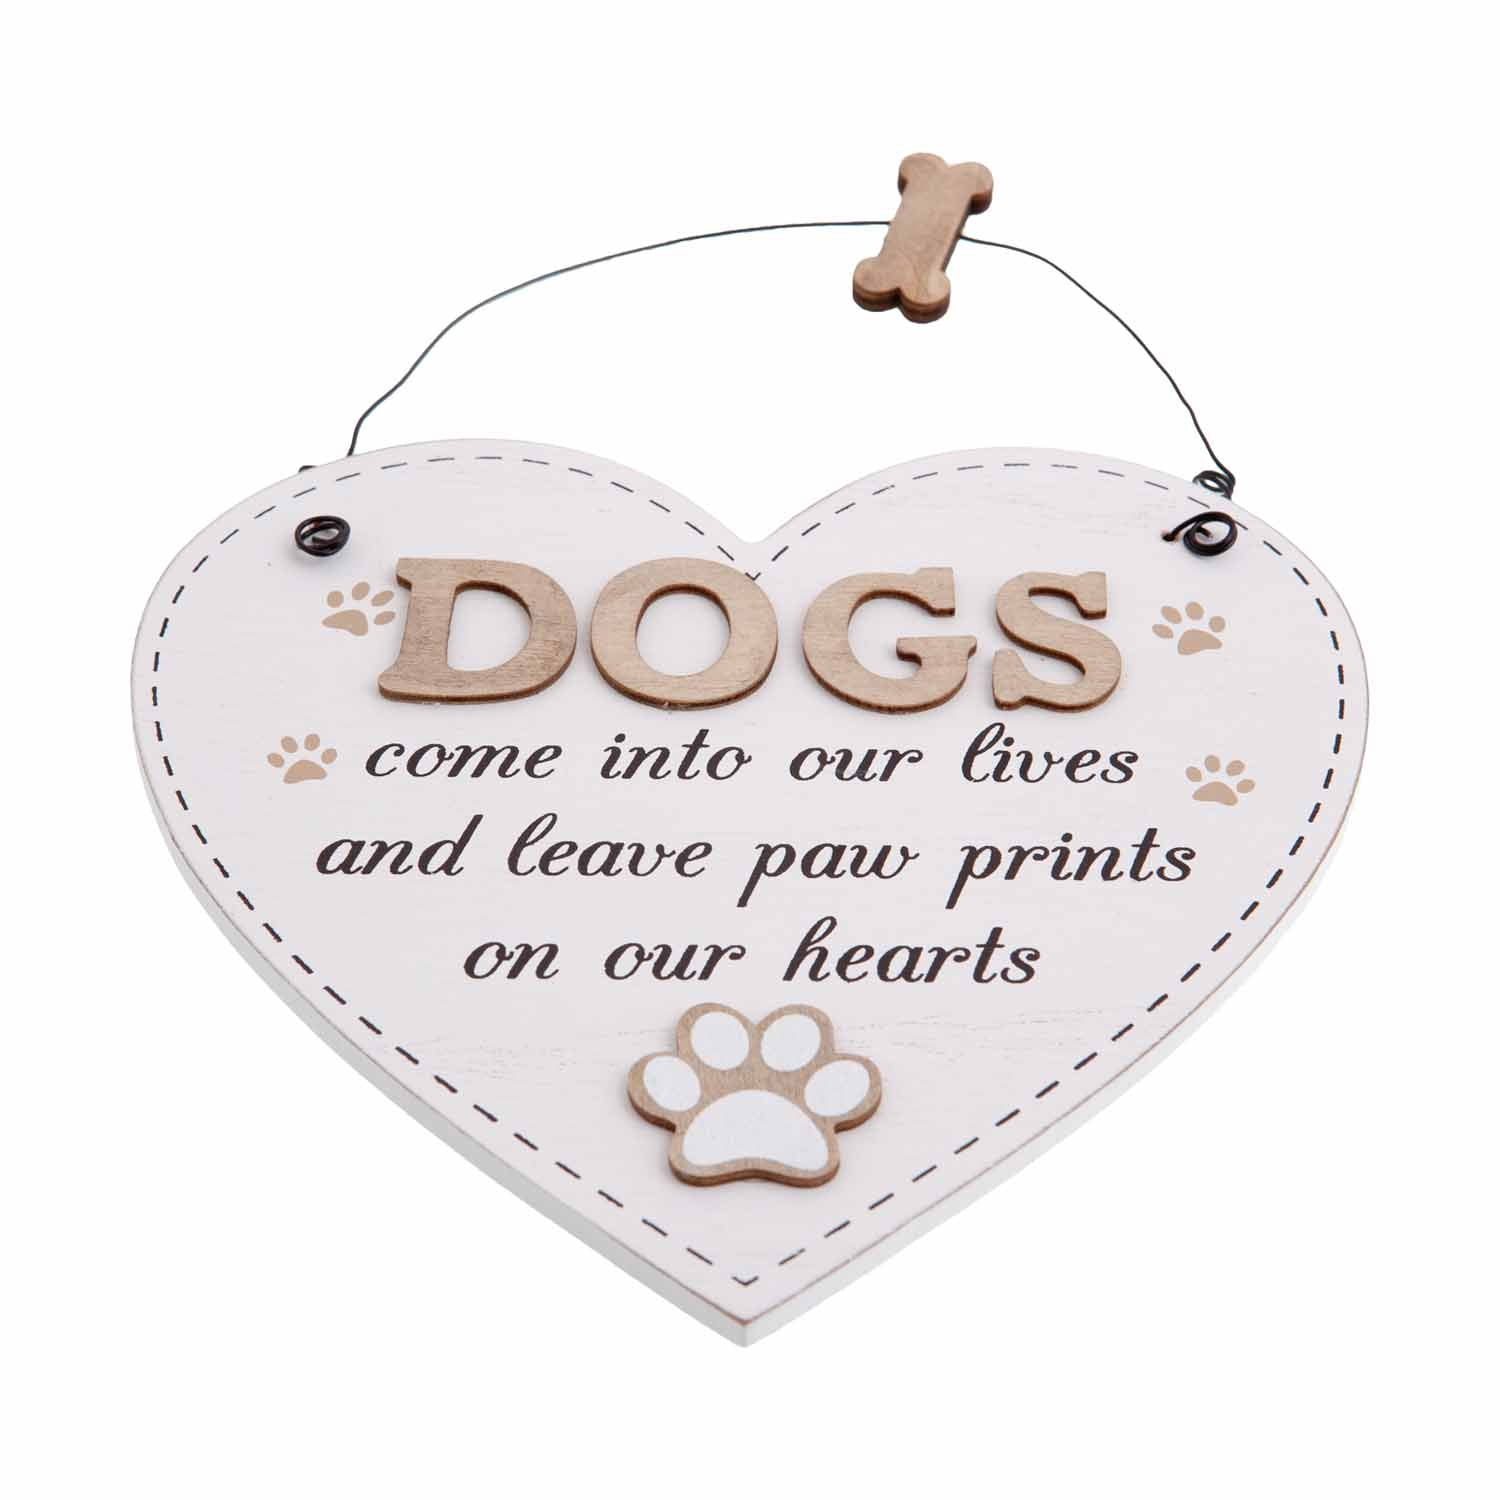 Dogs Come Into Our Lives Large Heart Sign Dog Krazy Gifts